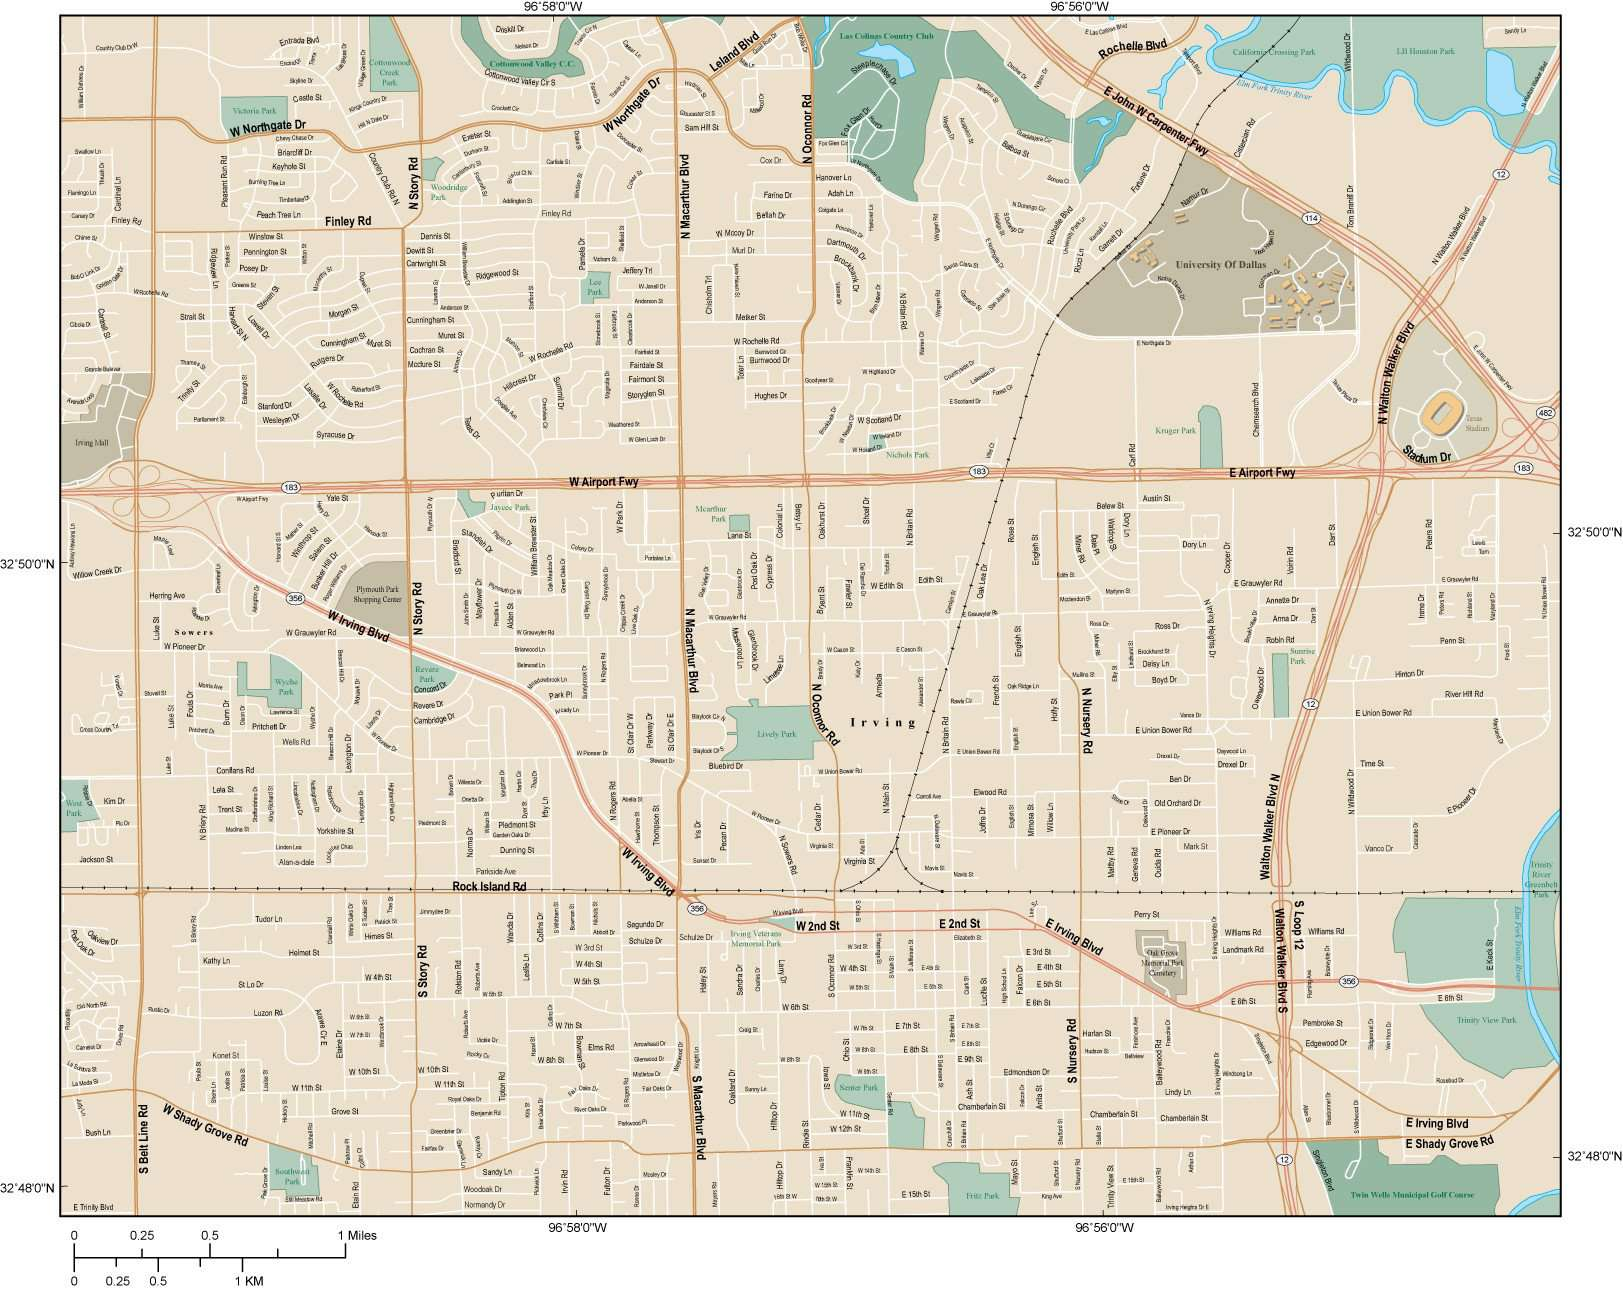 Irving Map With Local Streets In Adobe Illustrator Vector Format